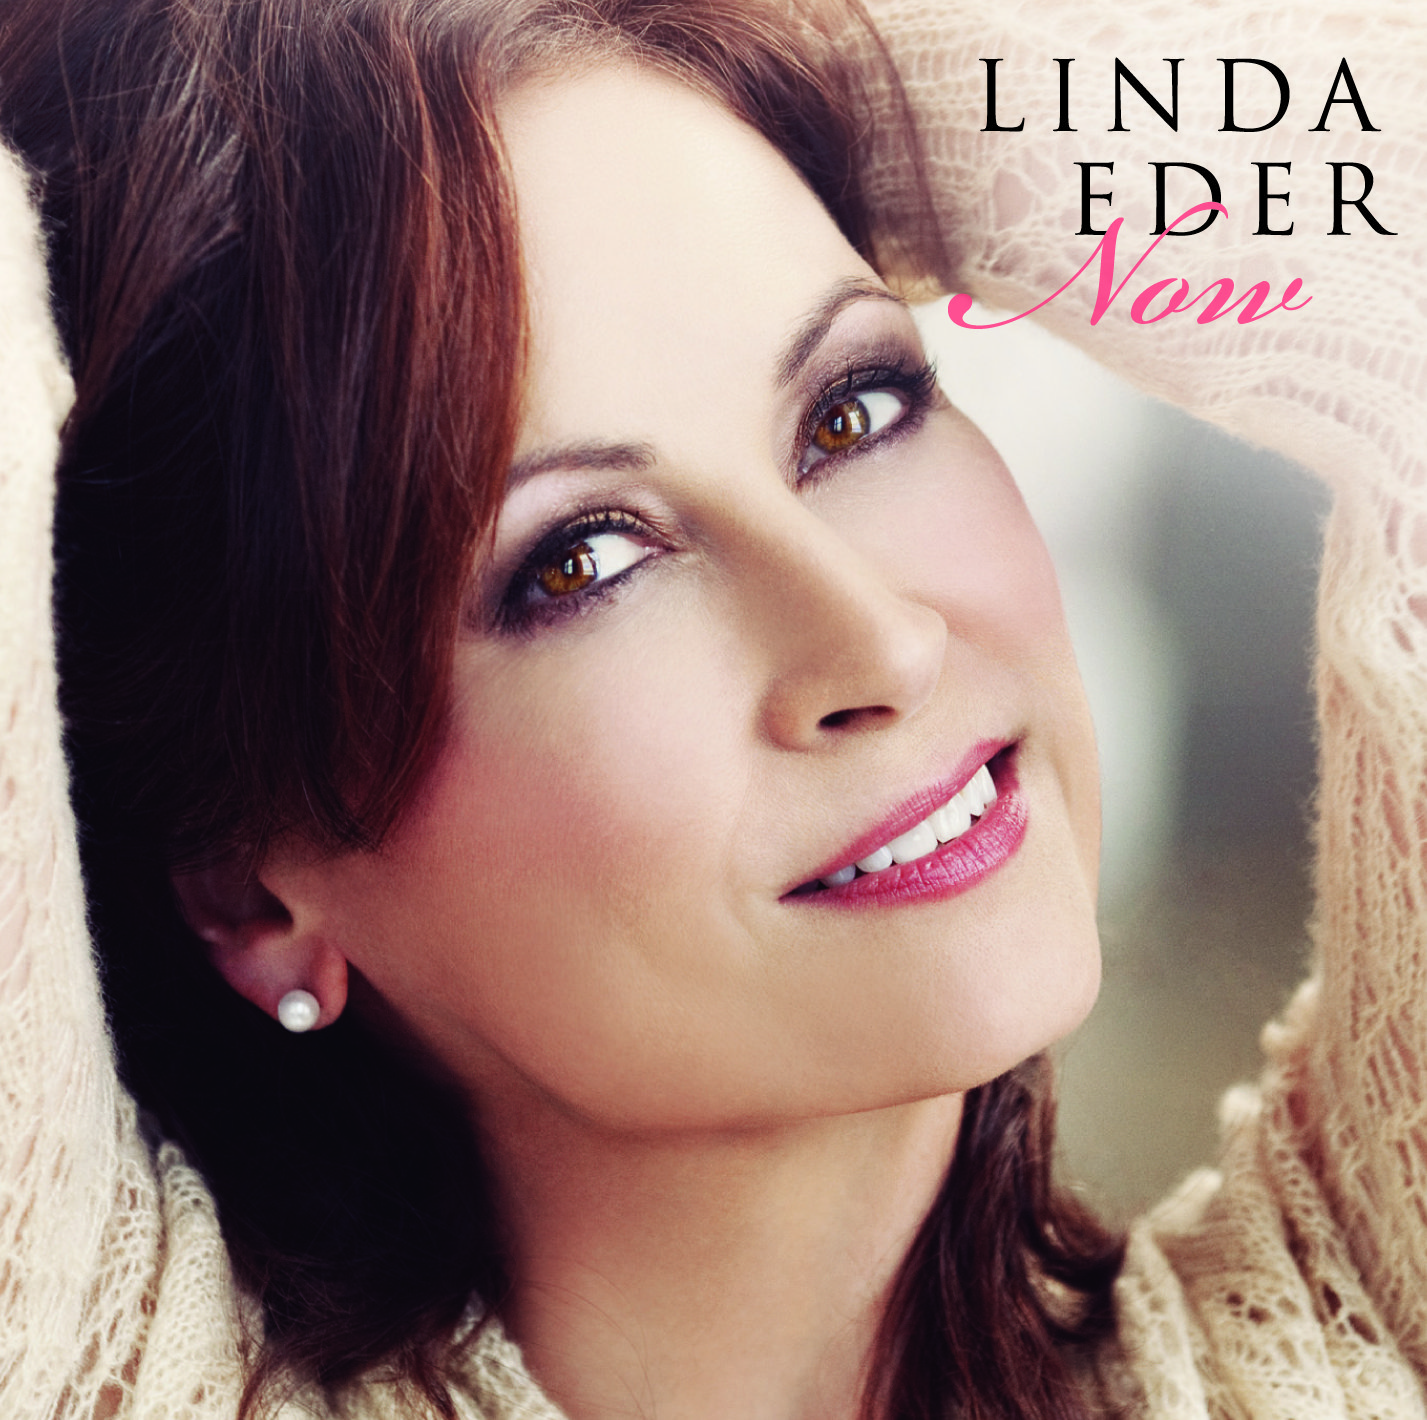 Linda Eder: Now